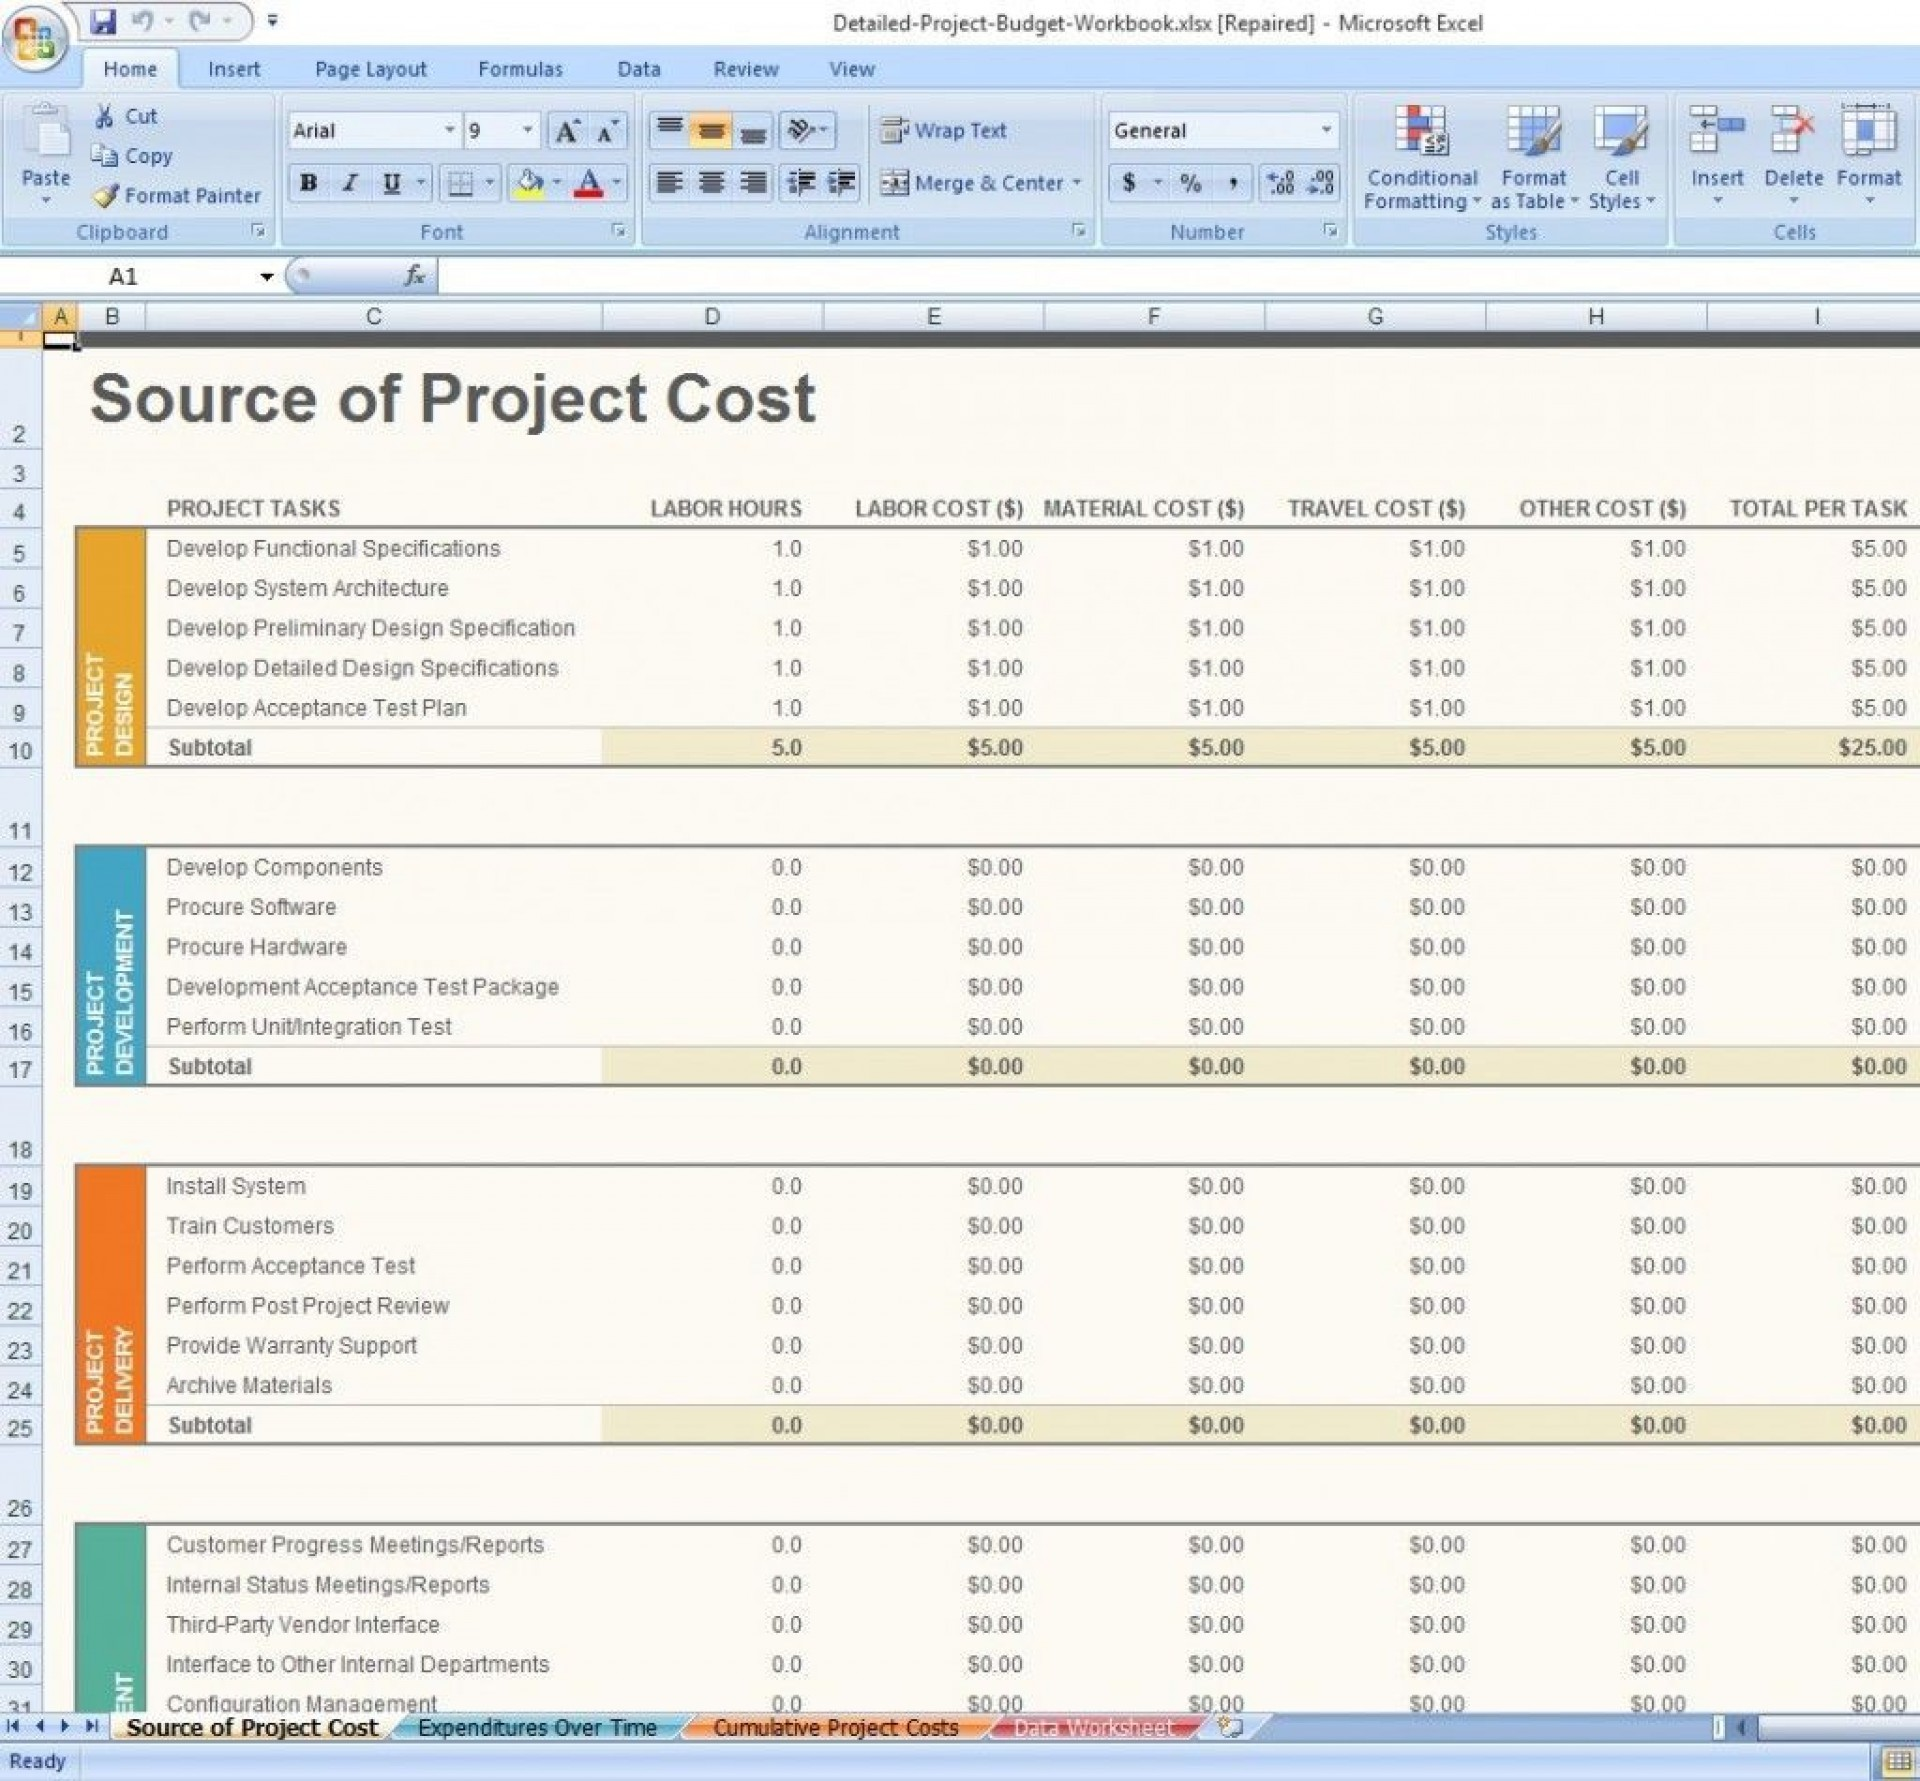 002 Unforgettable Best Home Renovation Budget Template Excel Free Inspiration 1920